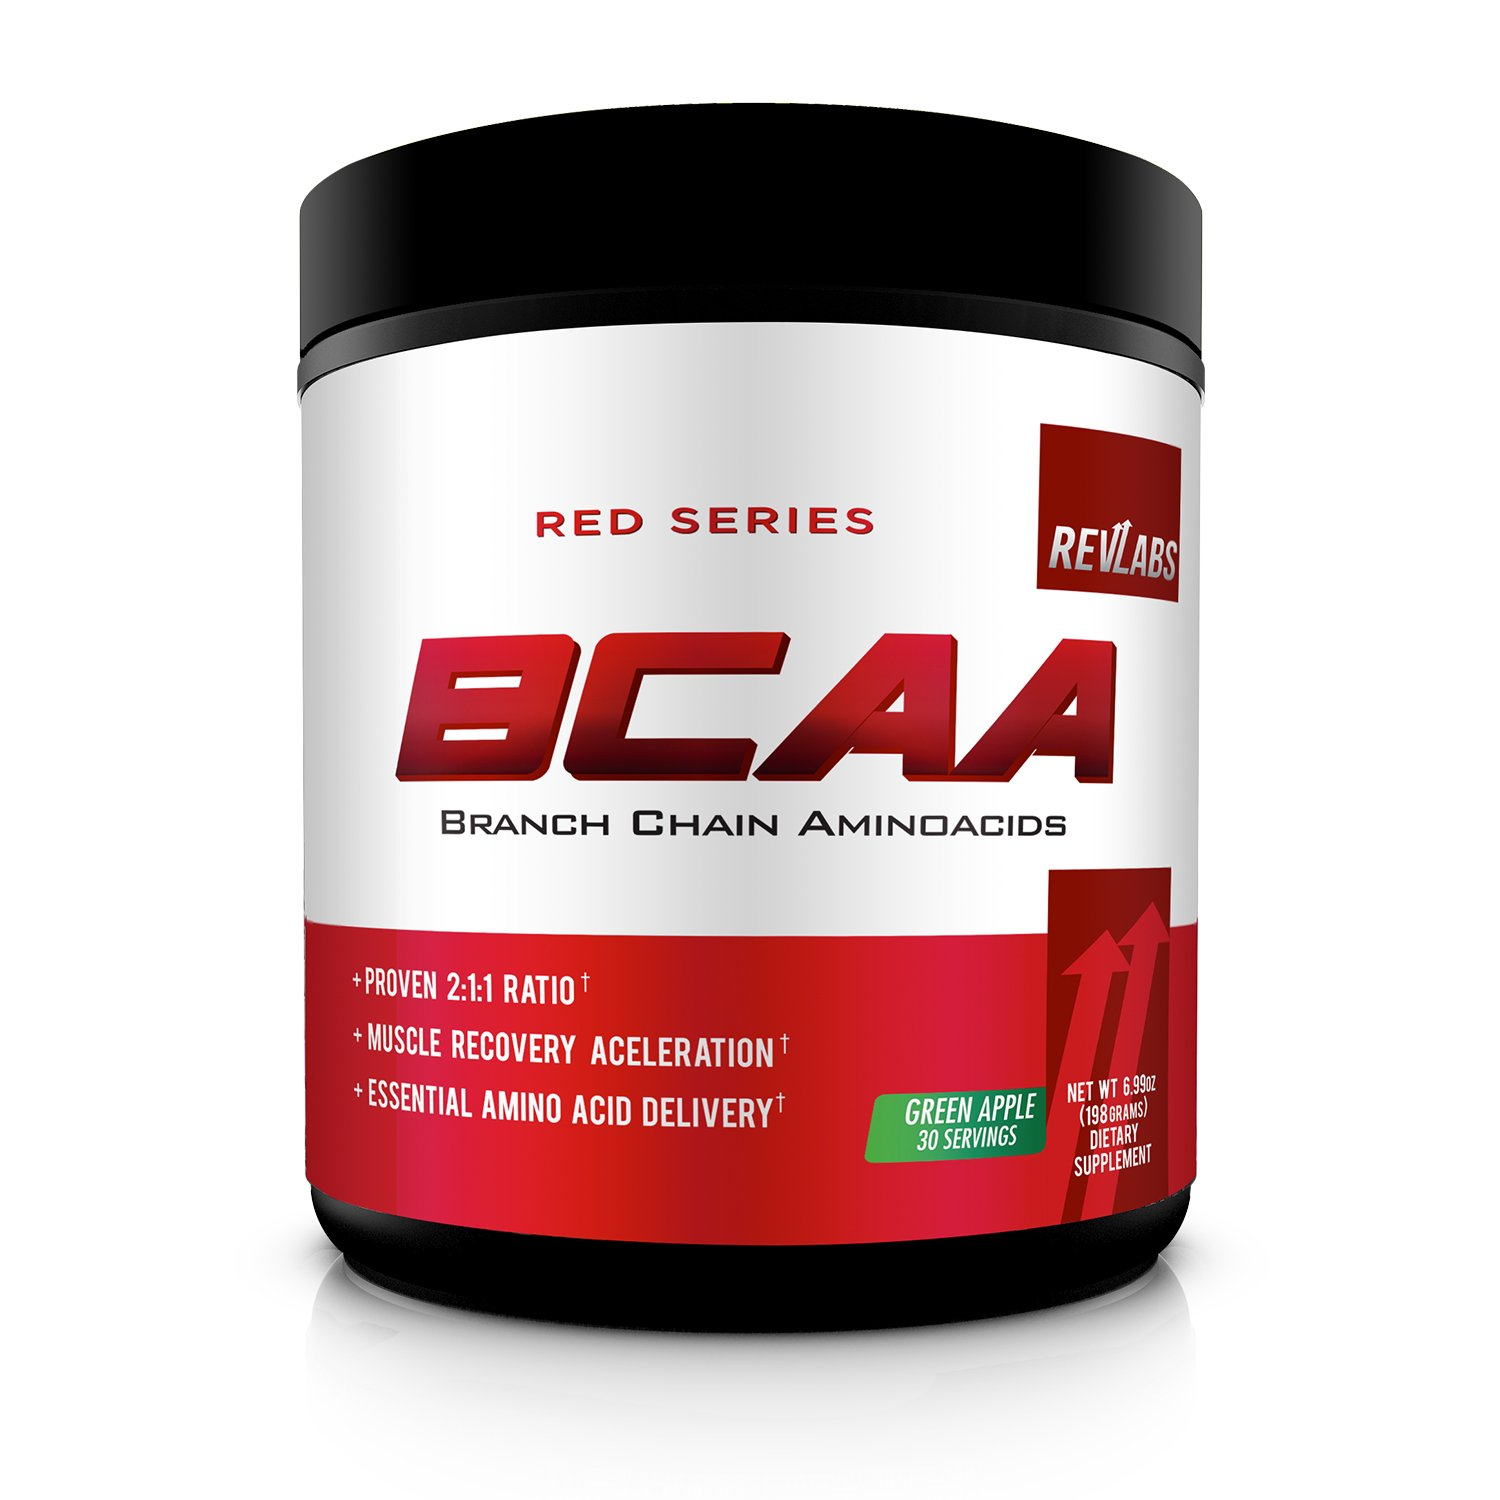 RevLabs- Red Series- BCAA-Proven 2:1:1 Ratio Branch Chain Amino Acids- Ultimate Muscle Recovery Acceleration- Green Apple -30 Servings